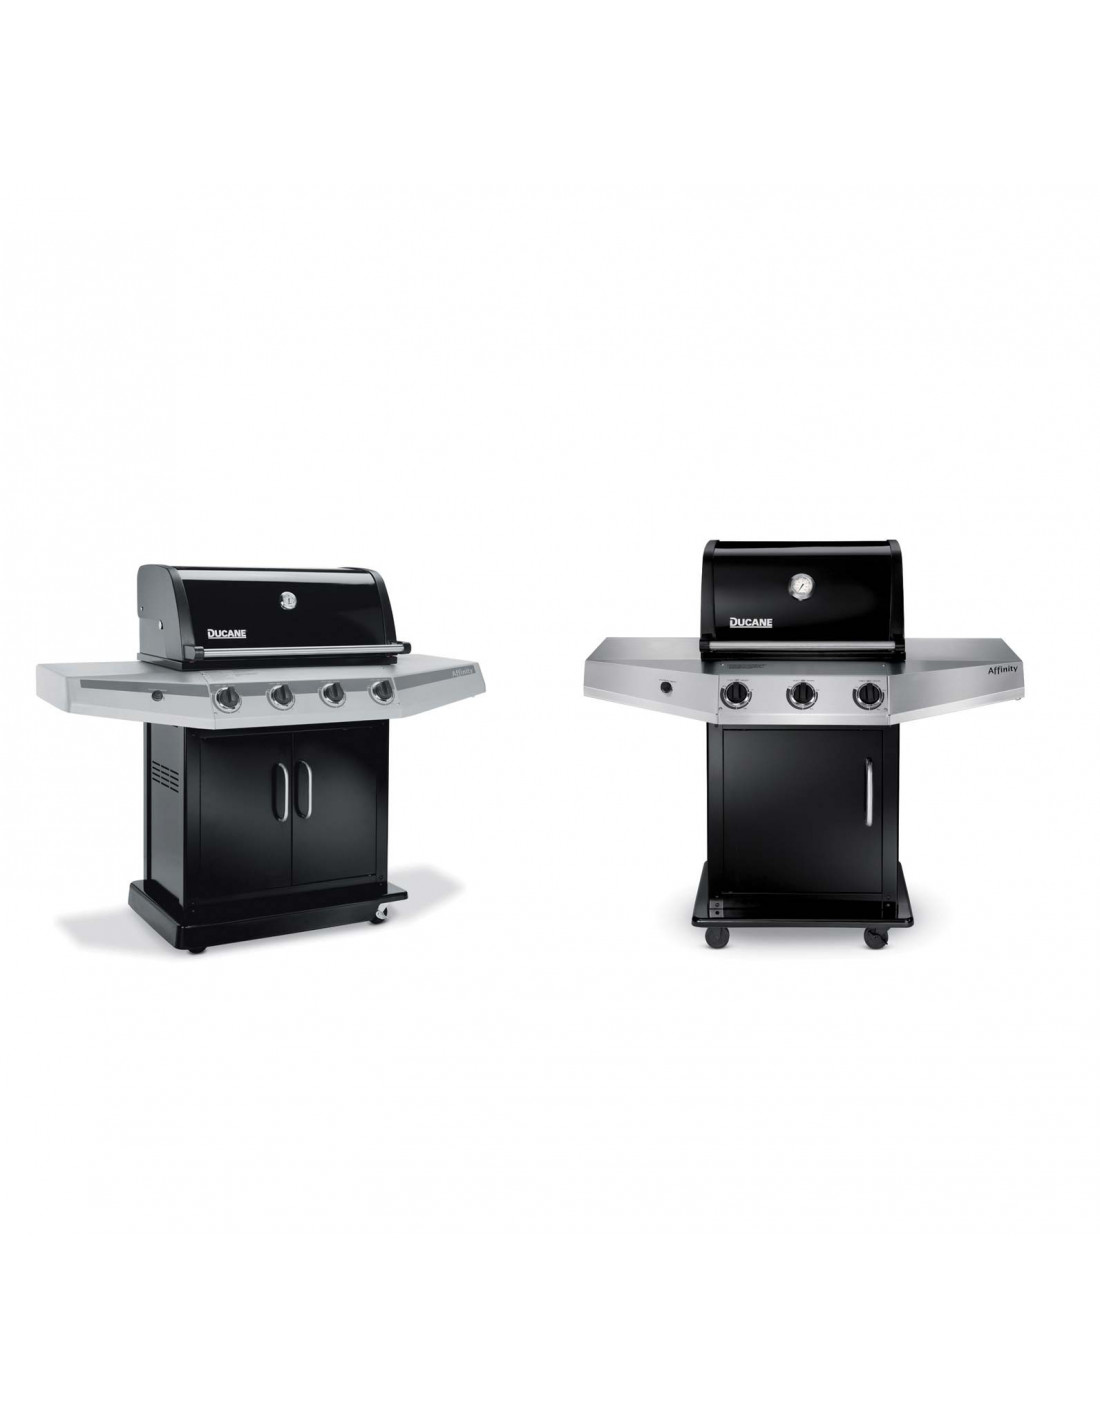 fils electrodes barbecue ducane. Black Bedroom Furniture Sets. Home Design Ideas